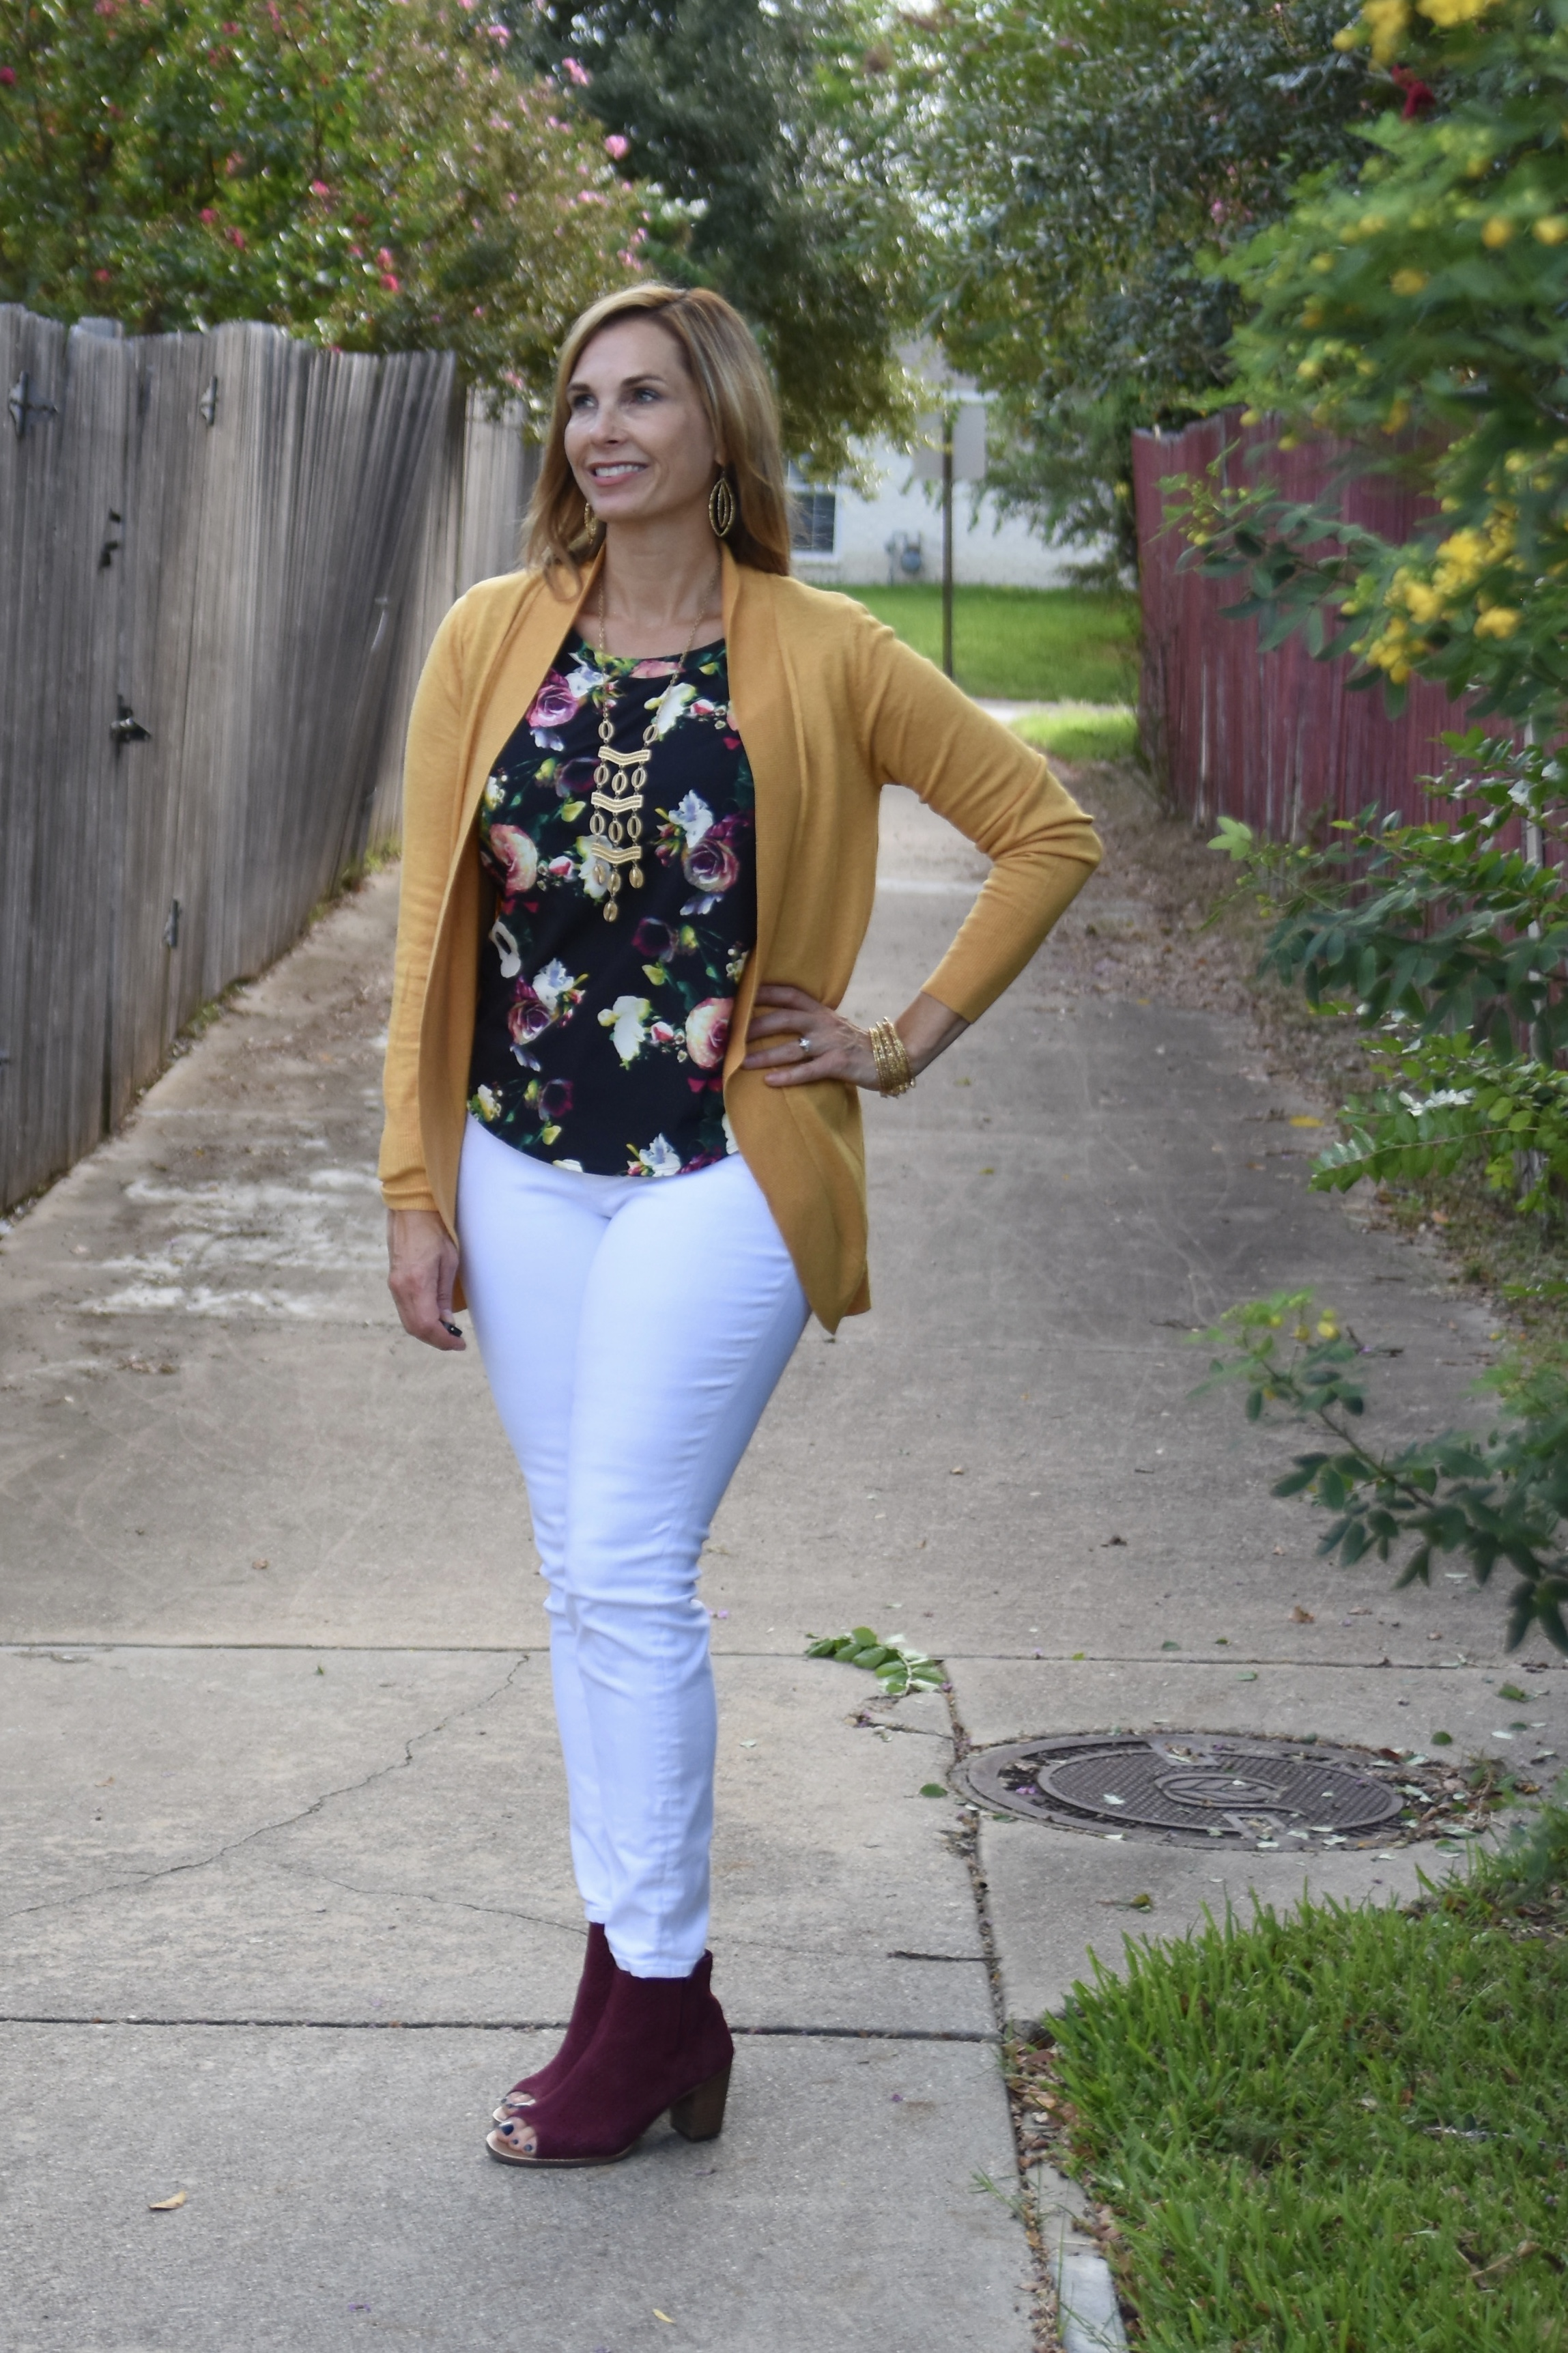 This lightweight mustard colored cardigan is a great summer to fall wardrobe transition piece transforming a summer look for early fall.